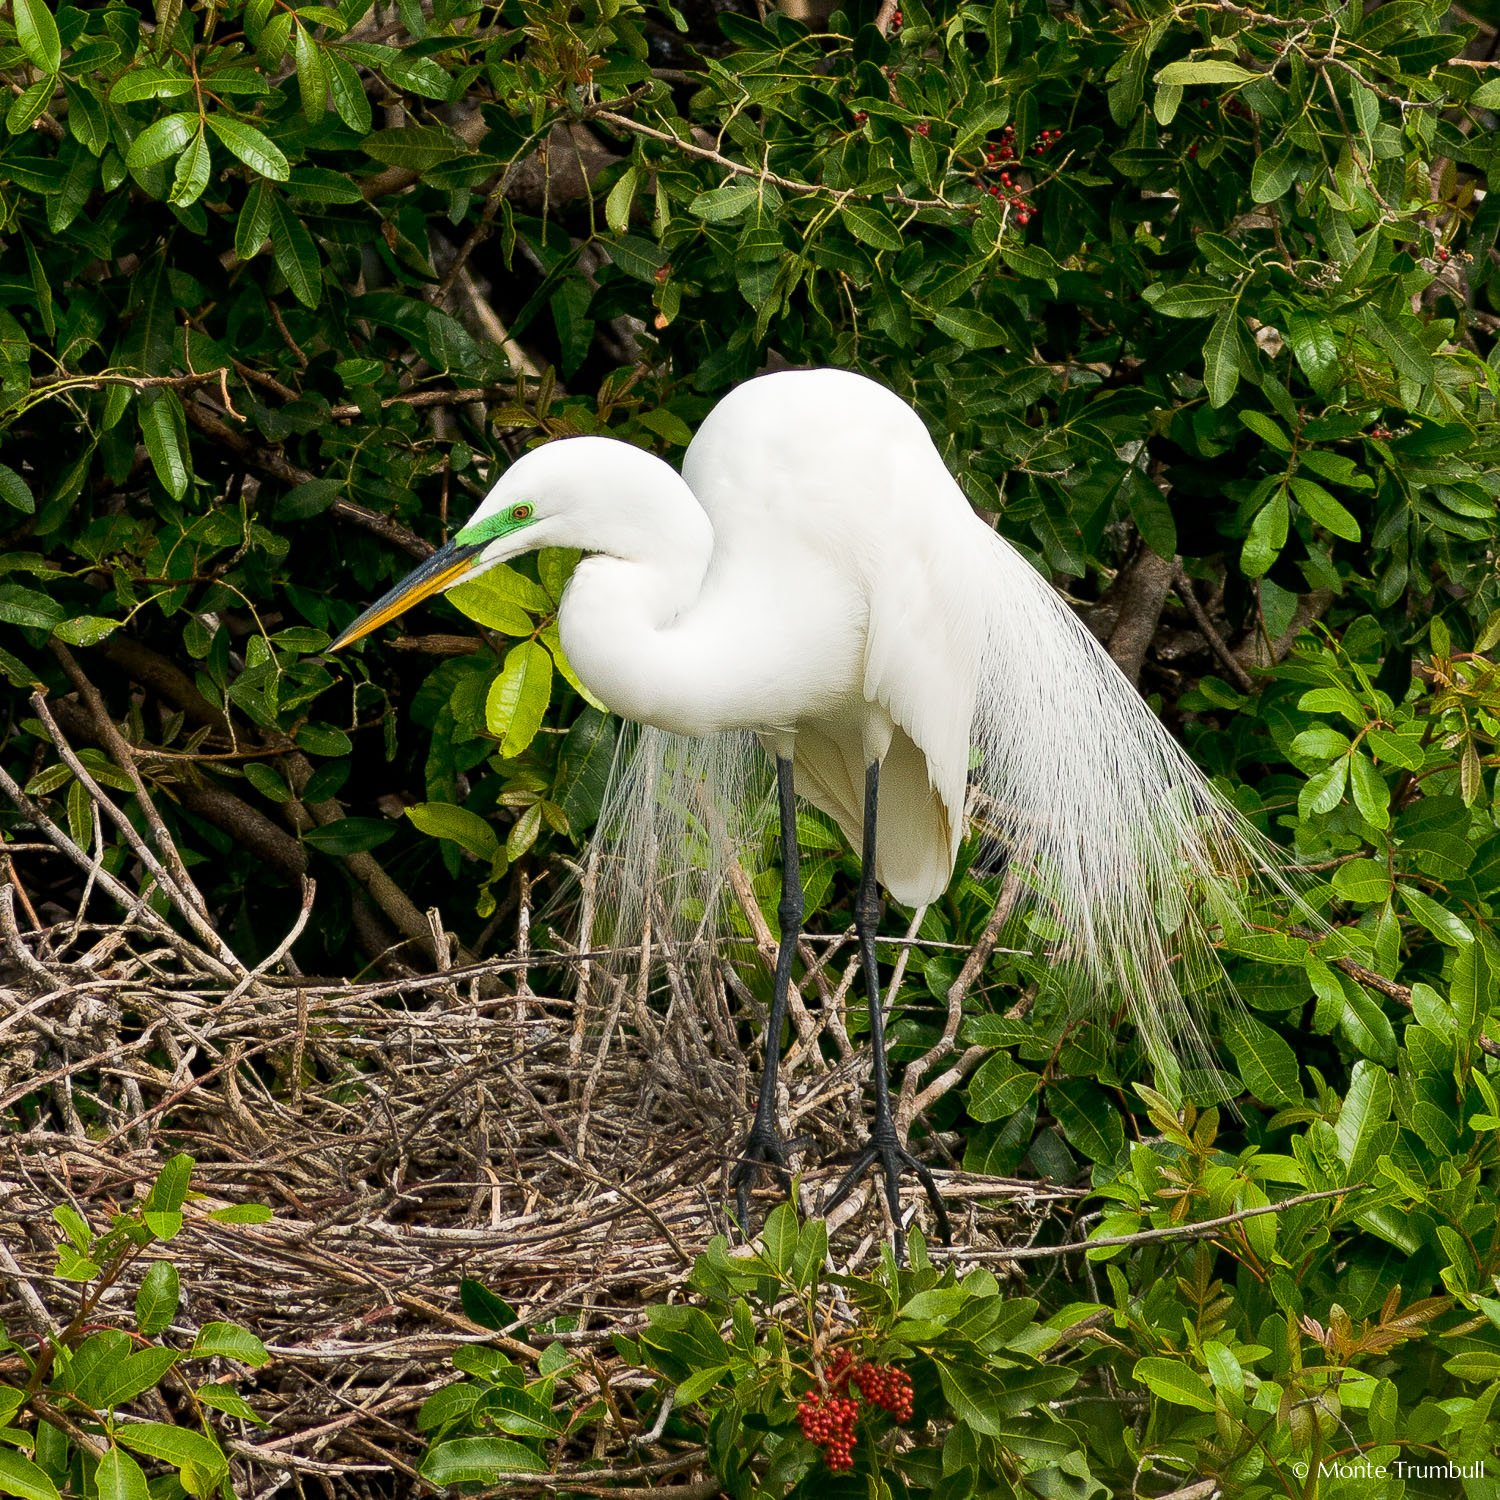 MT-20060303-094748-0182-Florida-Venice-Rookery-great-egret-plummage.jpg